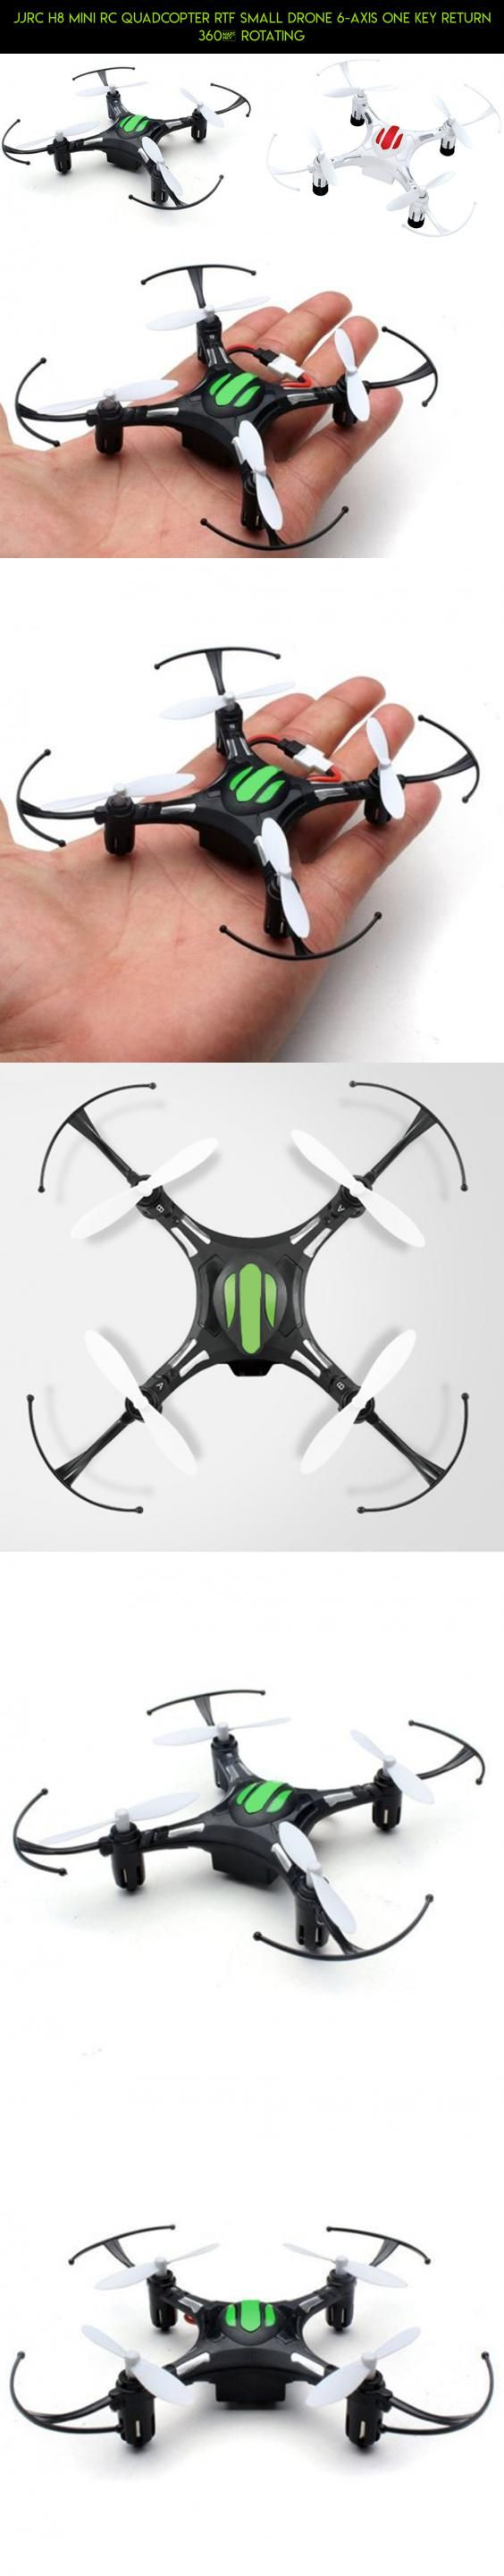 JJRC H8 Mini RC Quadcopter RTF Small Drone 6-axis One Key Return 360° Rotating #tech #technology #gadgets #kit #parts #fpv #products #drone #small #jjrc #racing #shopping #drone #plans #camera